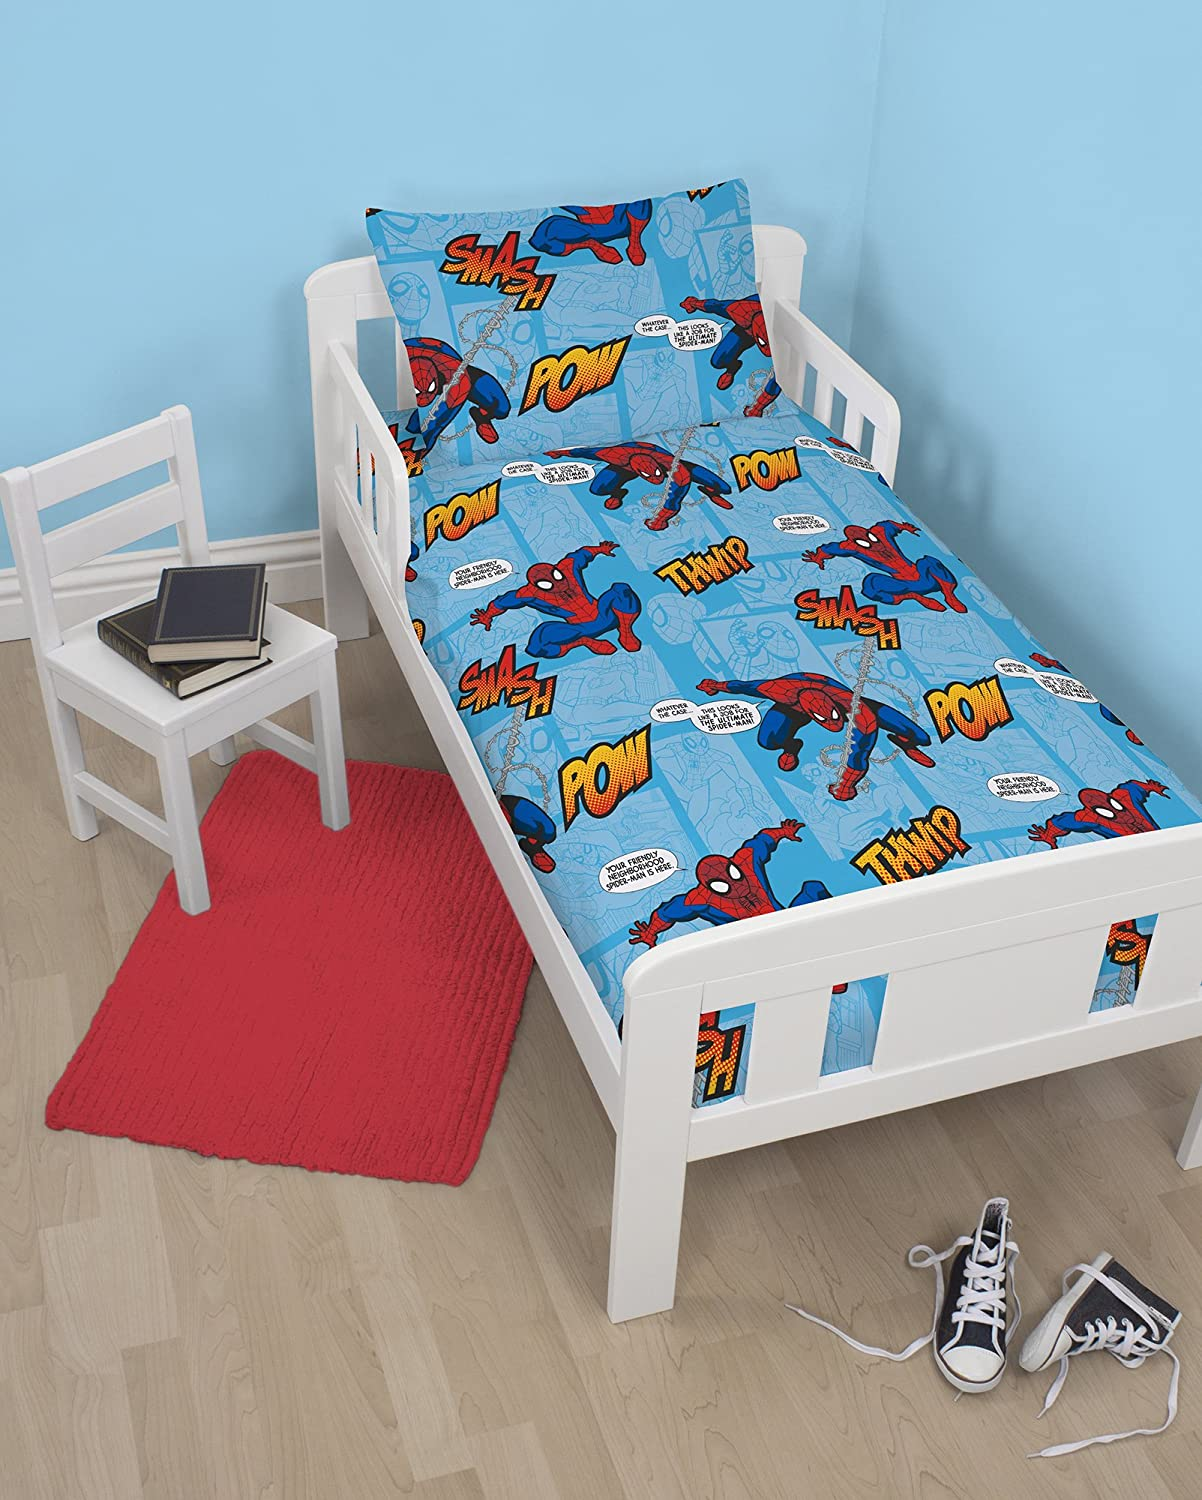 Disney Spiderman Ultimate Thwip Junior Rotary Bedding Bundle character world DUS-TWP-DX1-MSCx-01xx